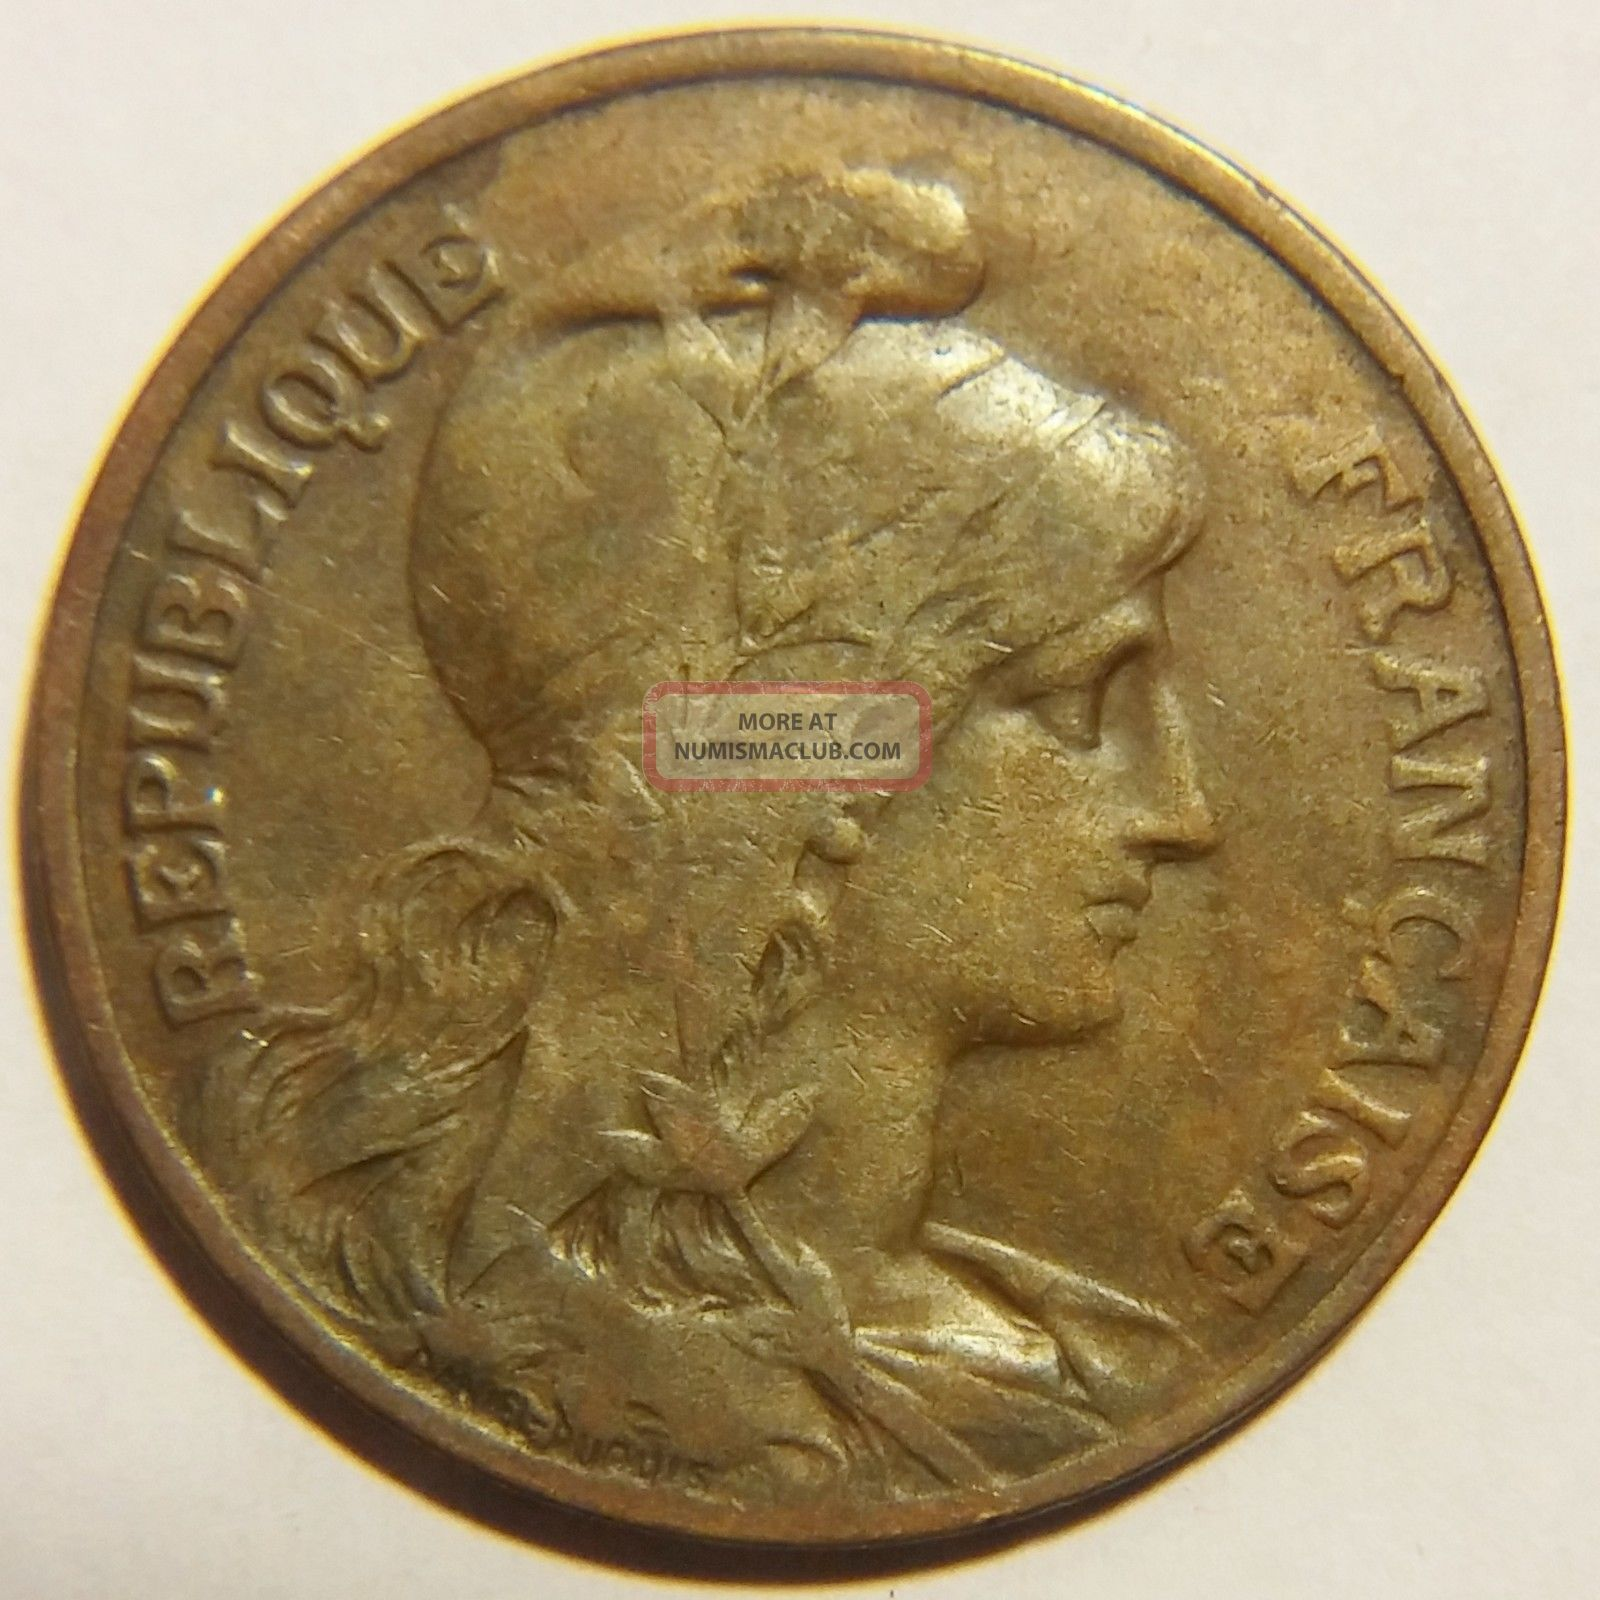 Rare 1913 France 10 Centimes Km 843 Very Fine Europe photo